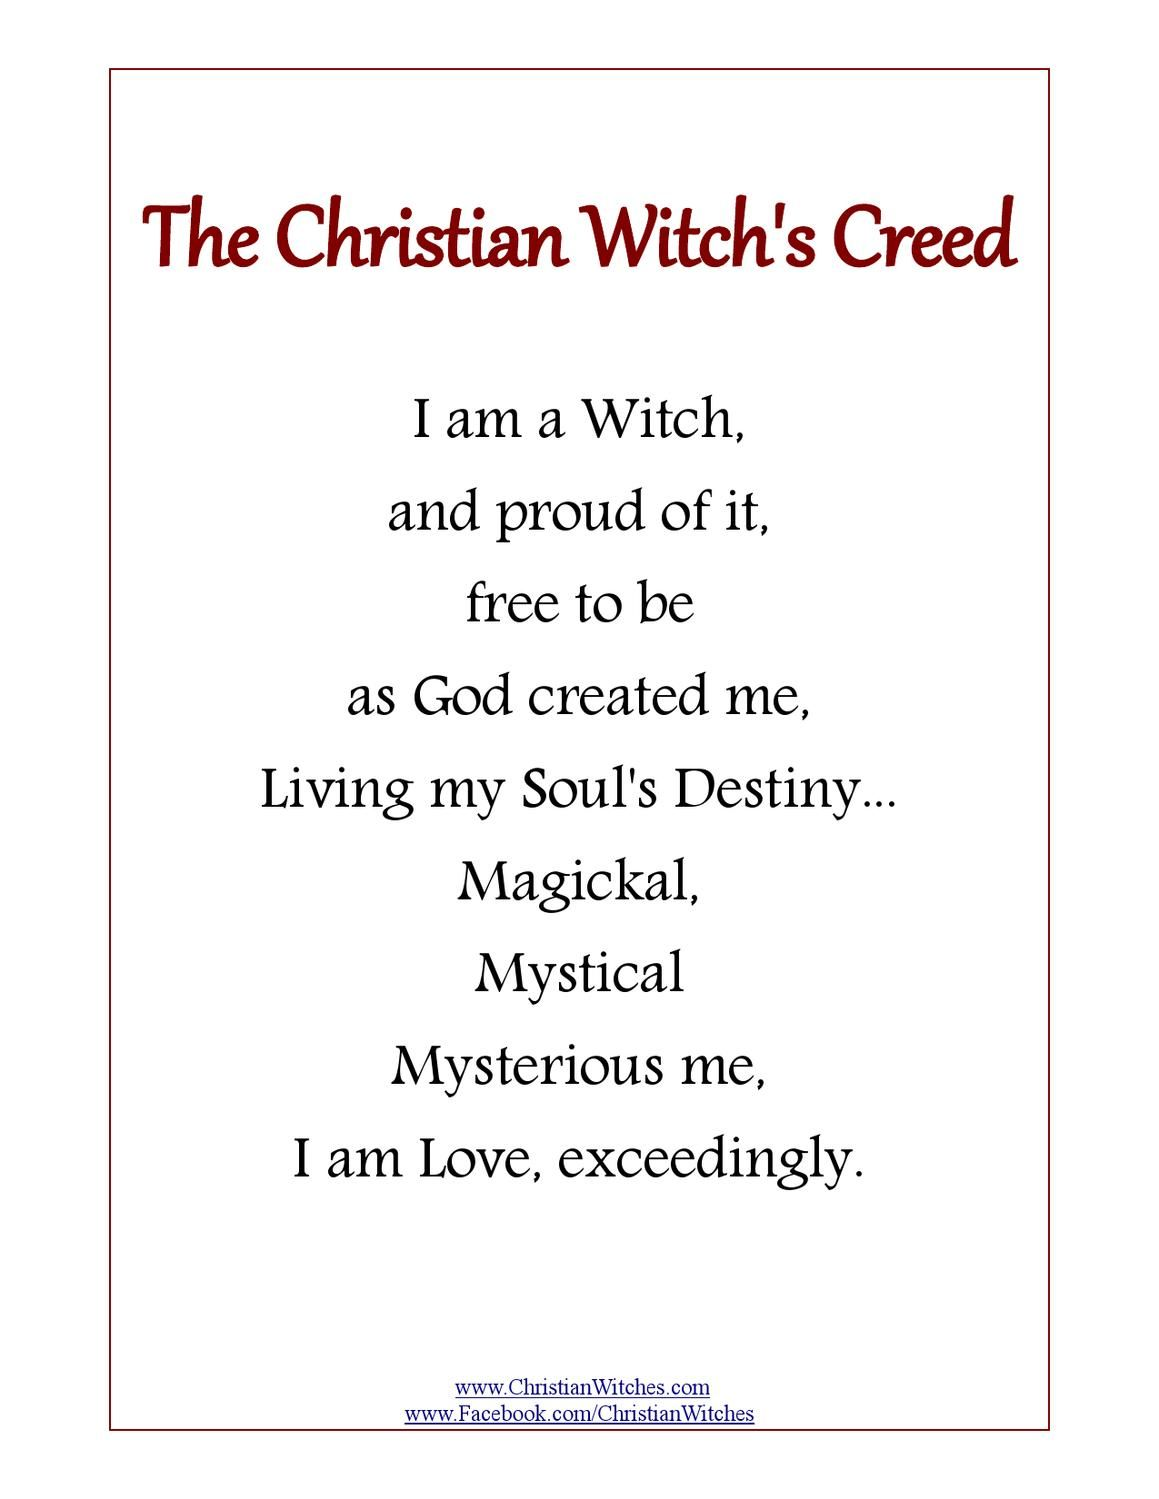 The Christian Witch's Creed | bos | Joseph dreams, Witch